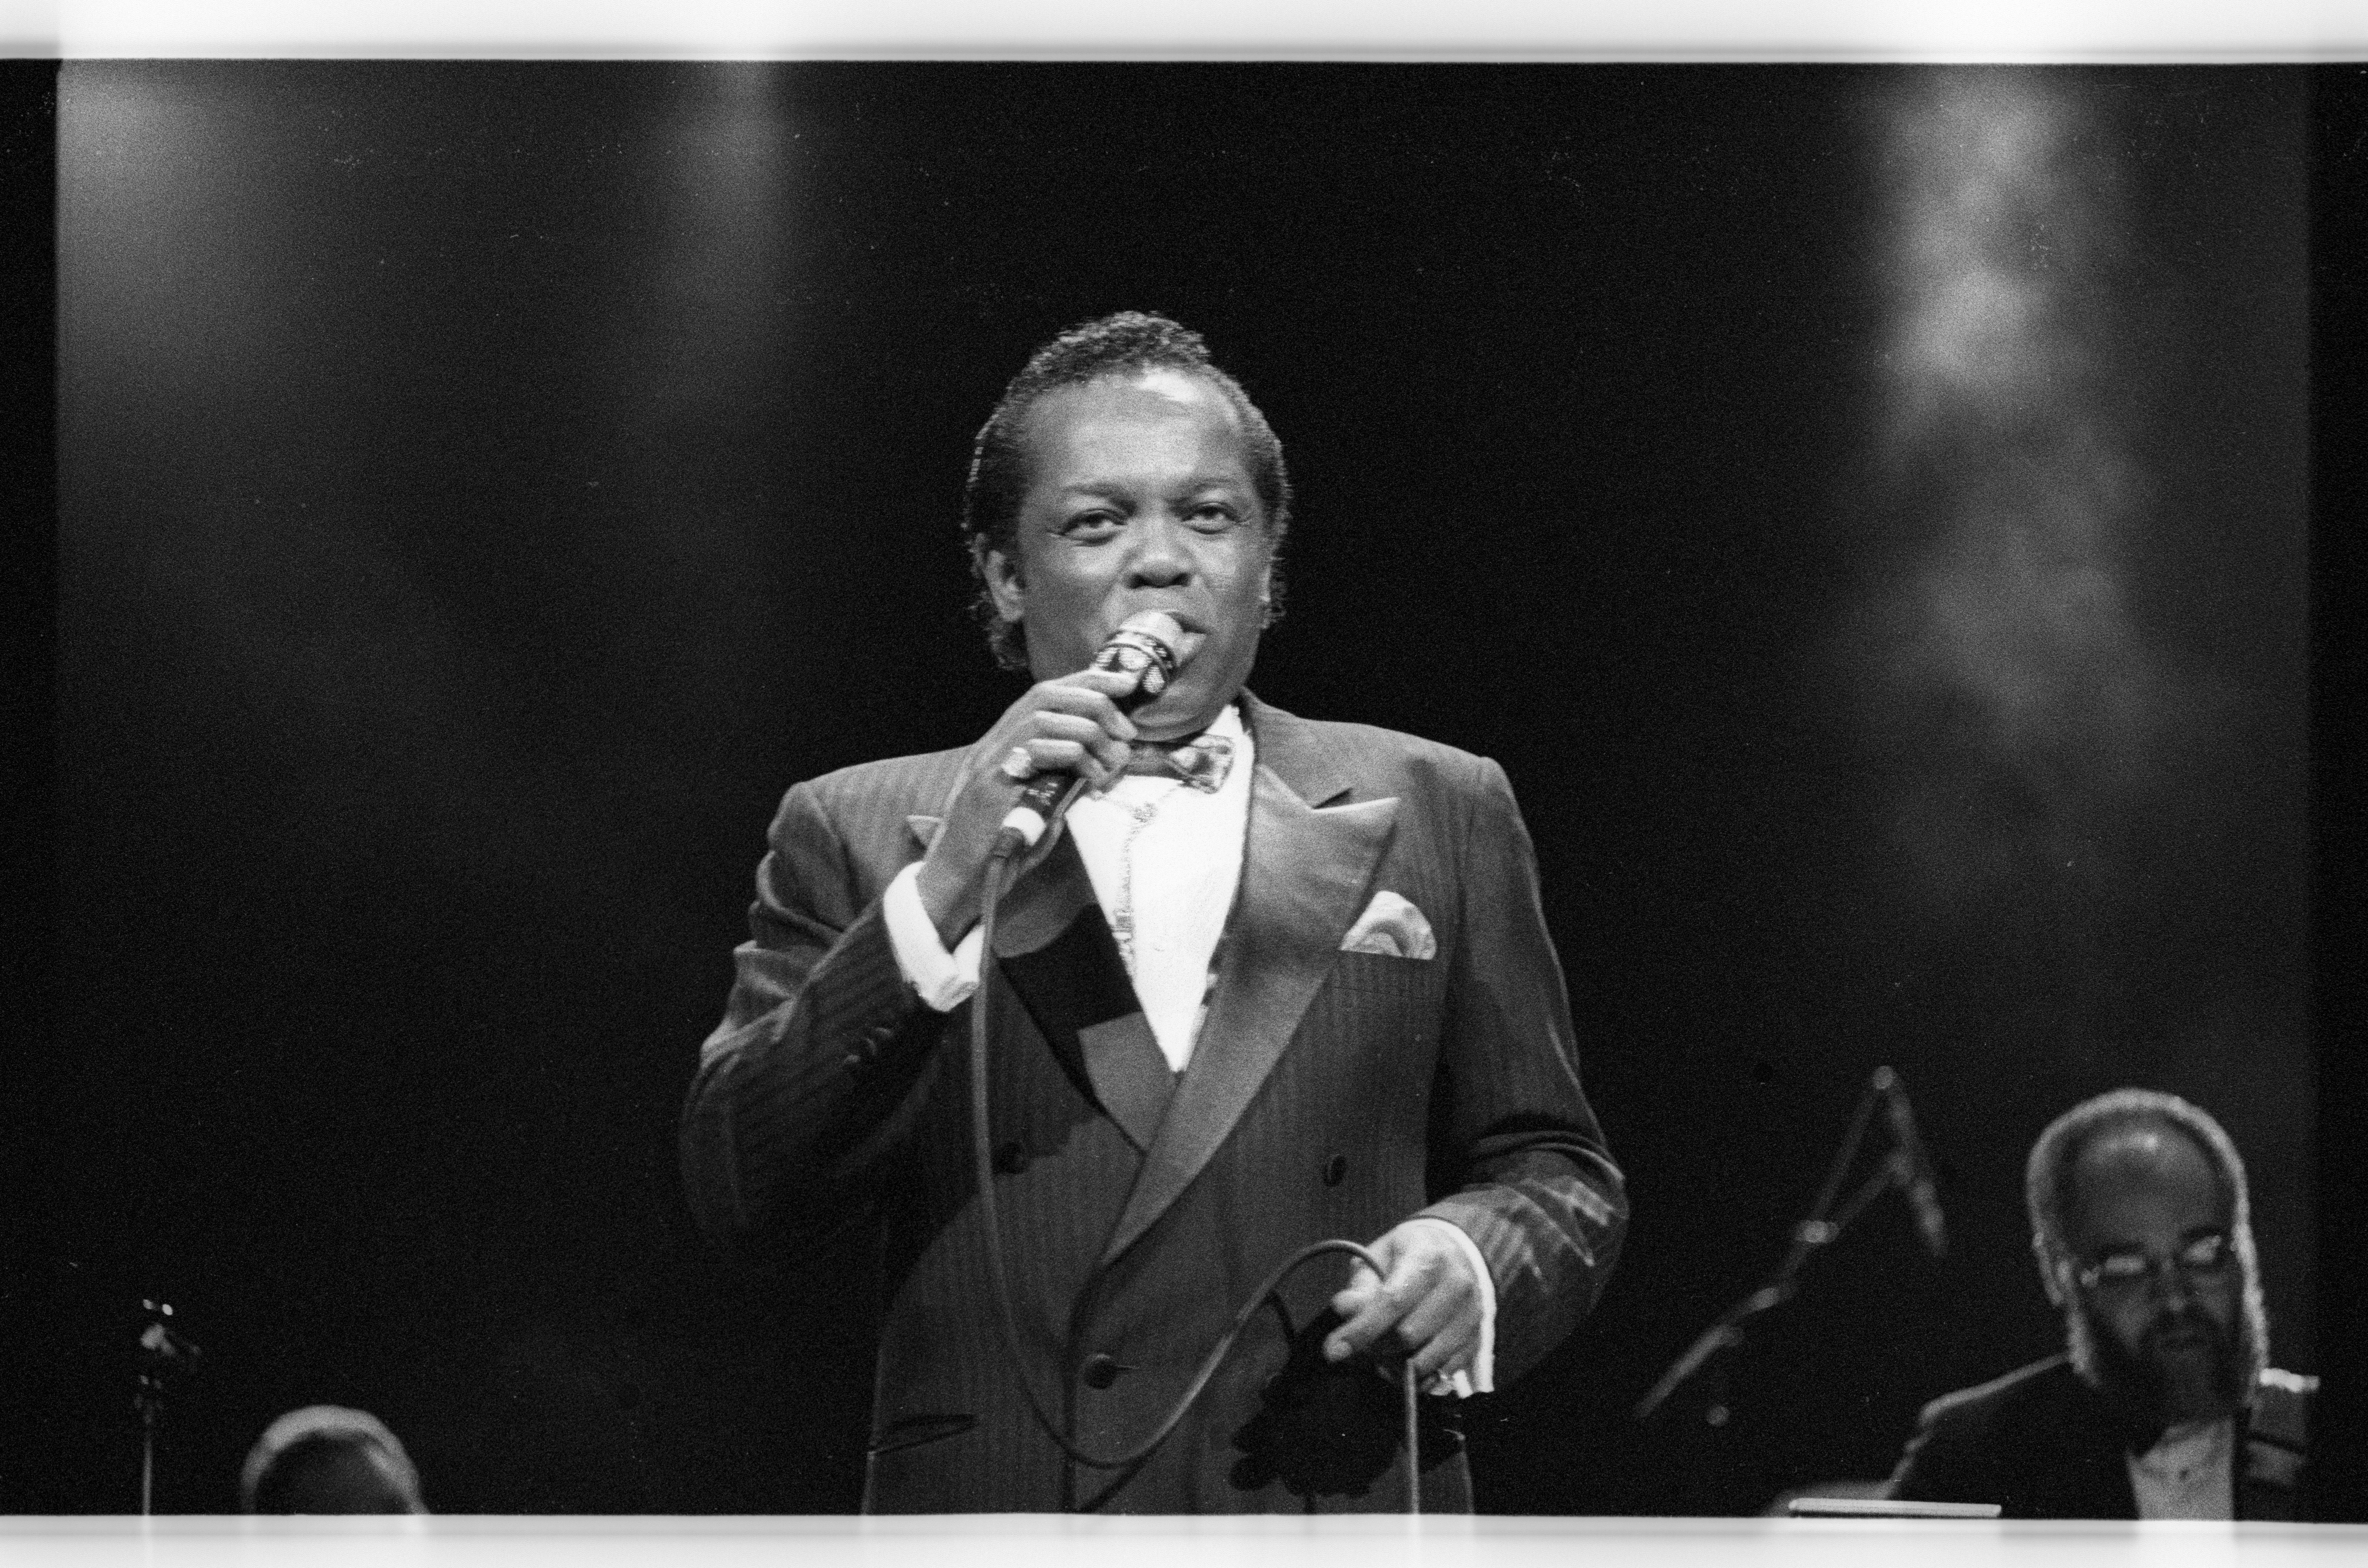 Lou Rawls, Royal Albert Hall, 1990